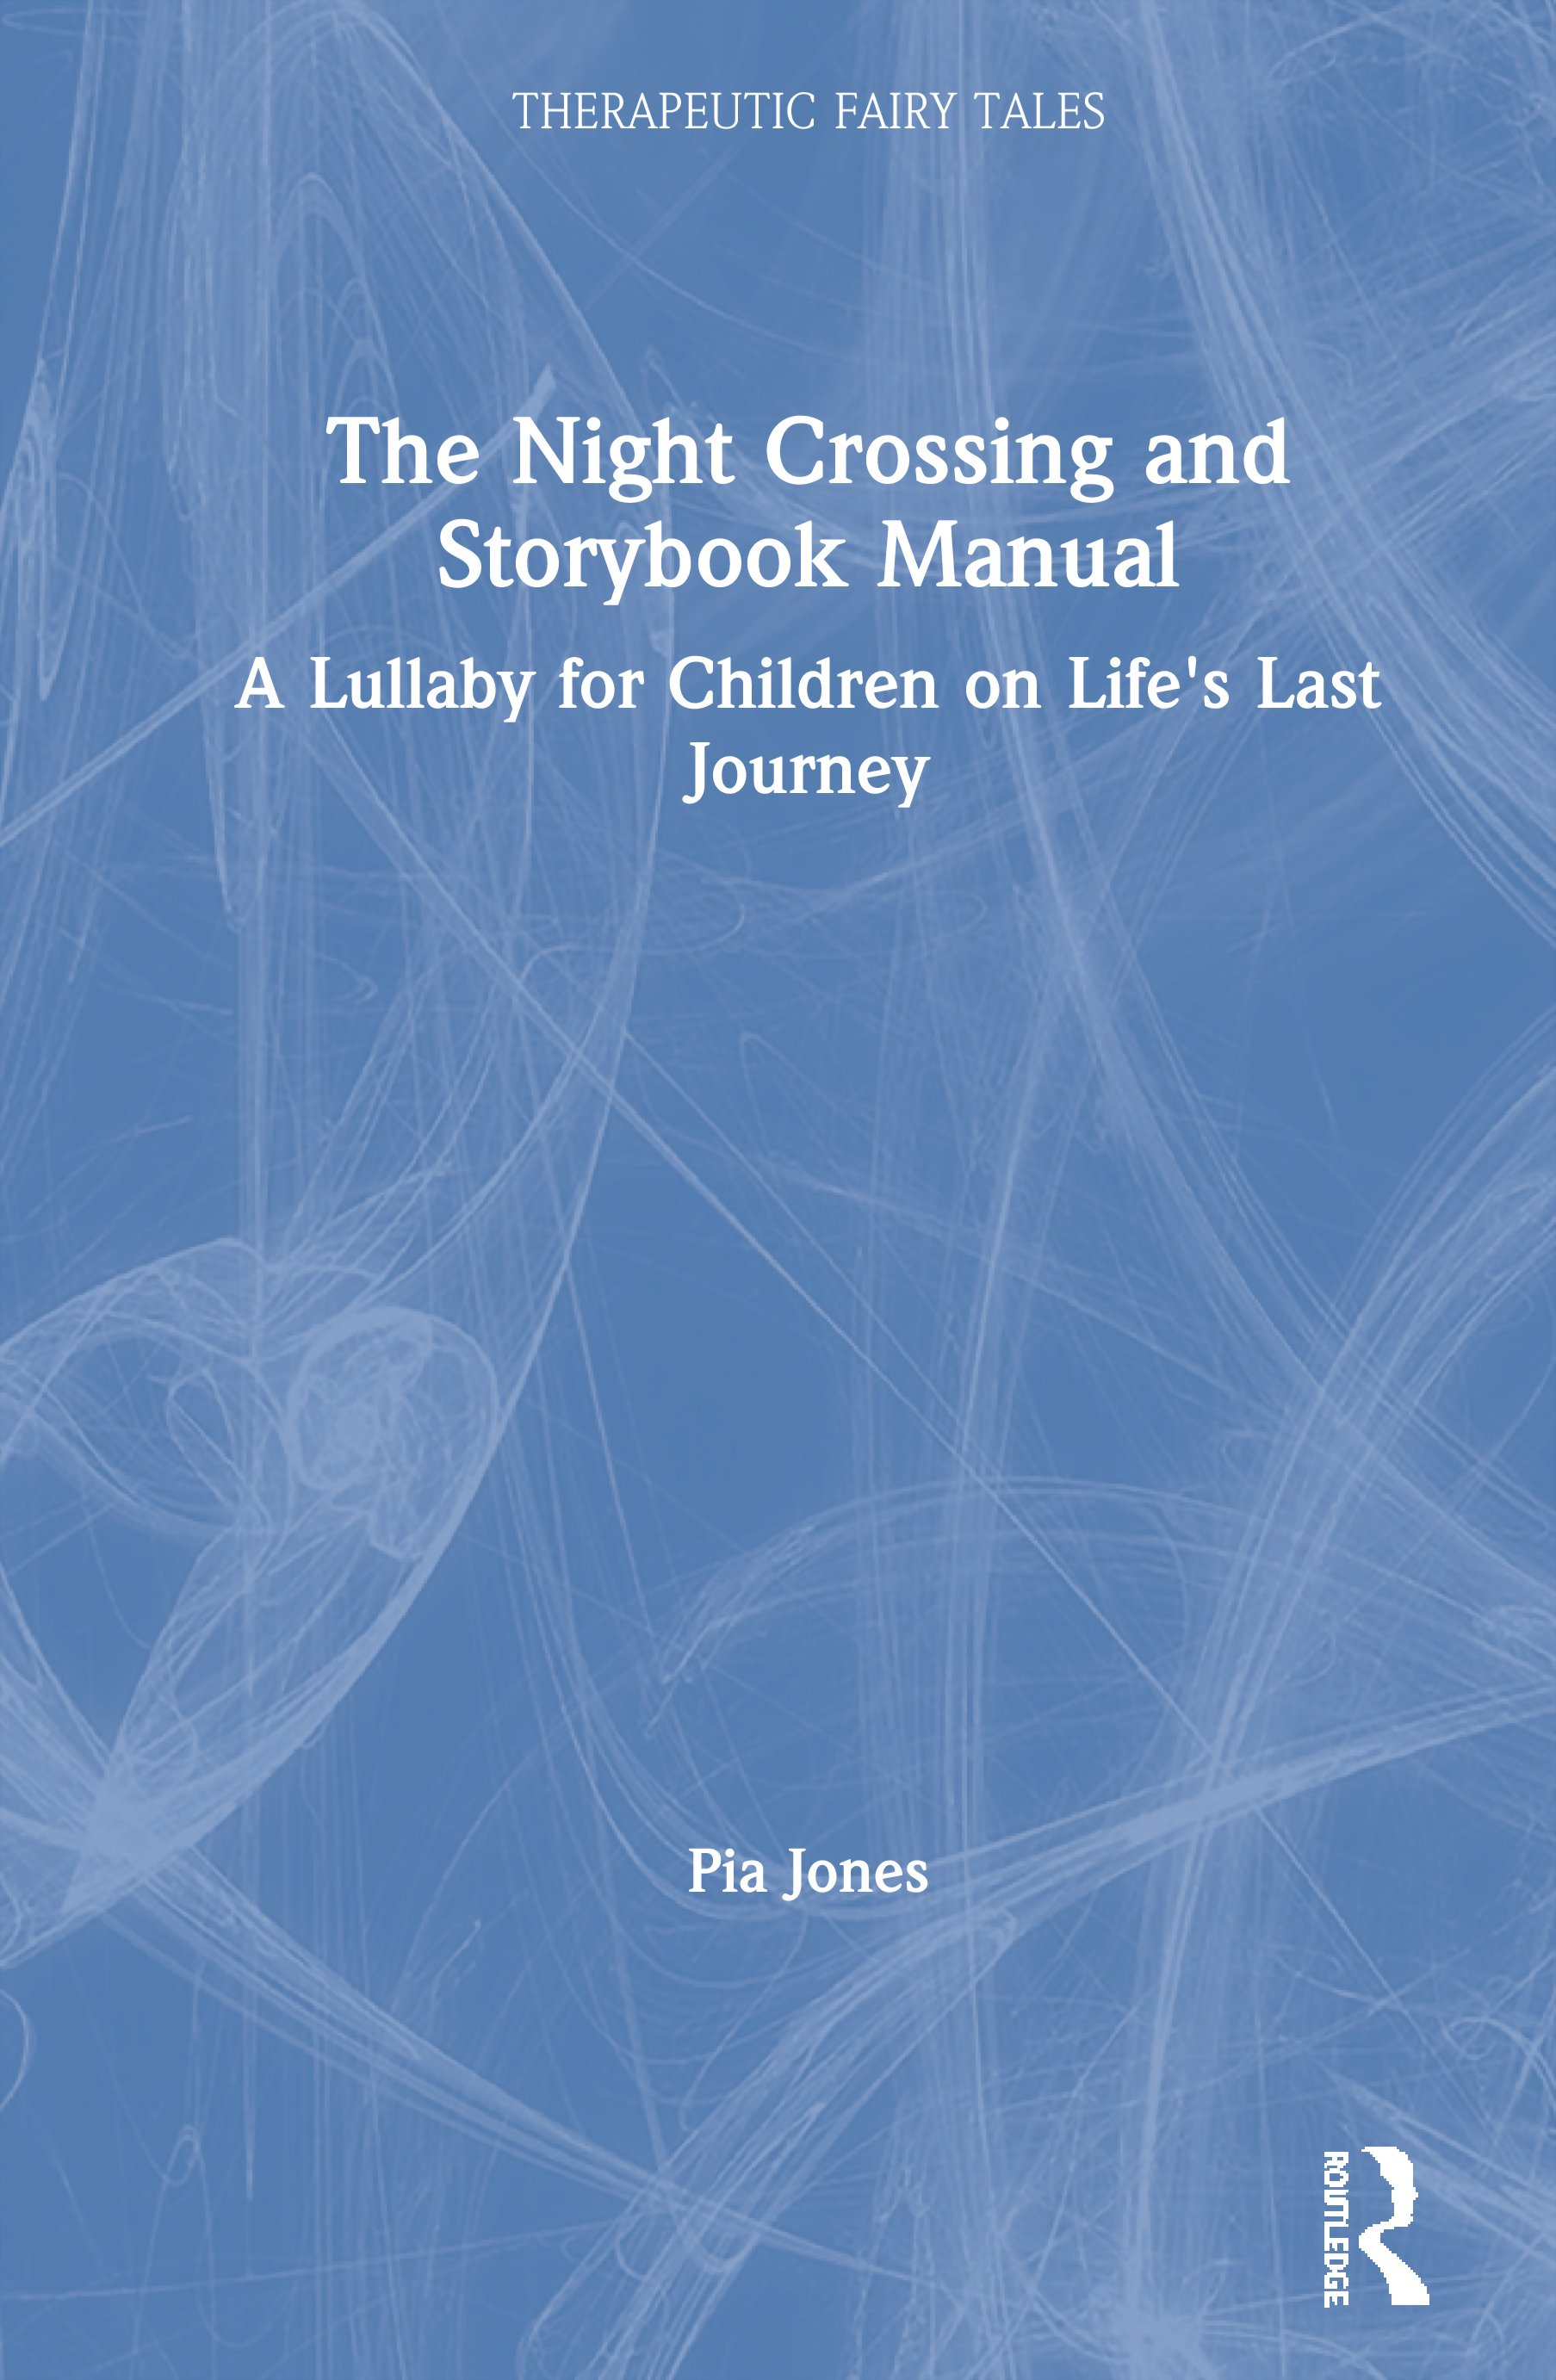 The Night Crossing and Storybook Manual: A Lullaby for Children on Life's Last Journey book cover